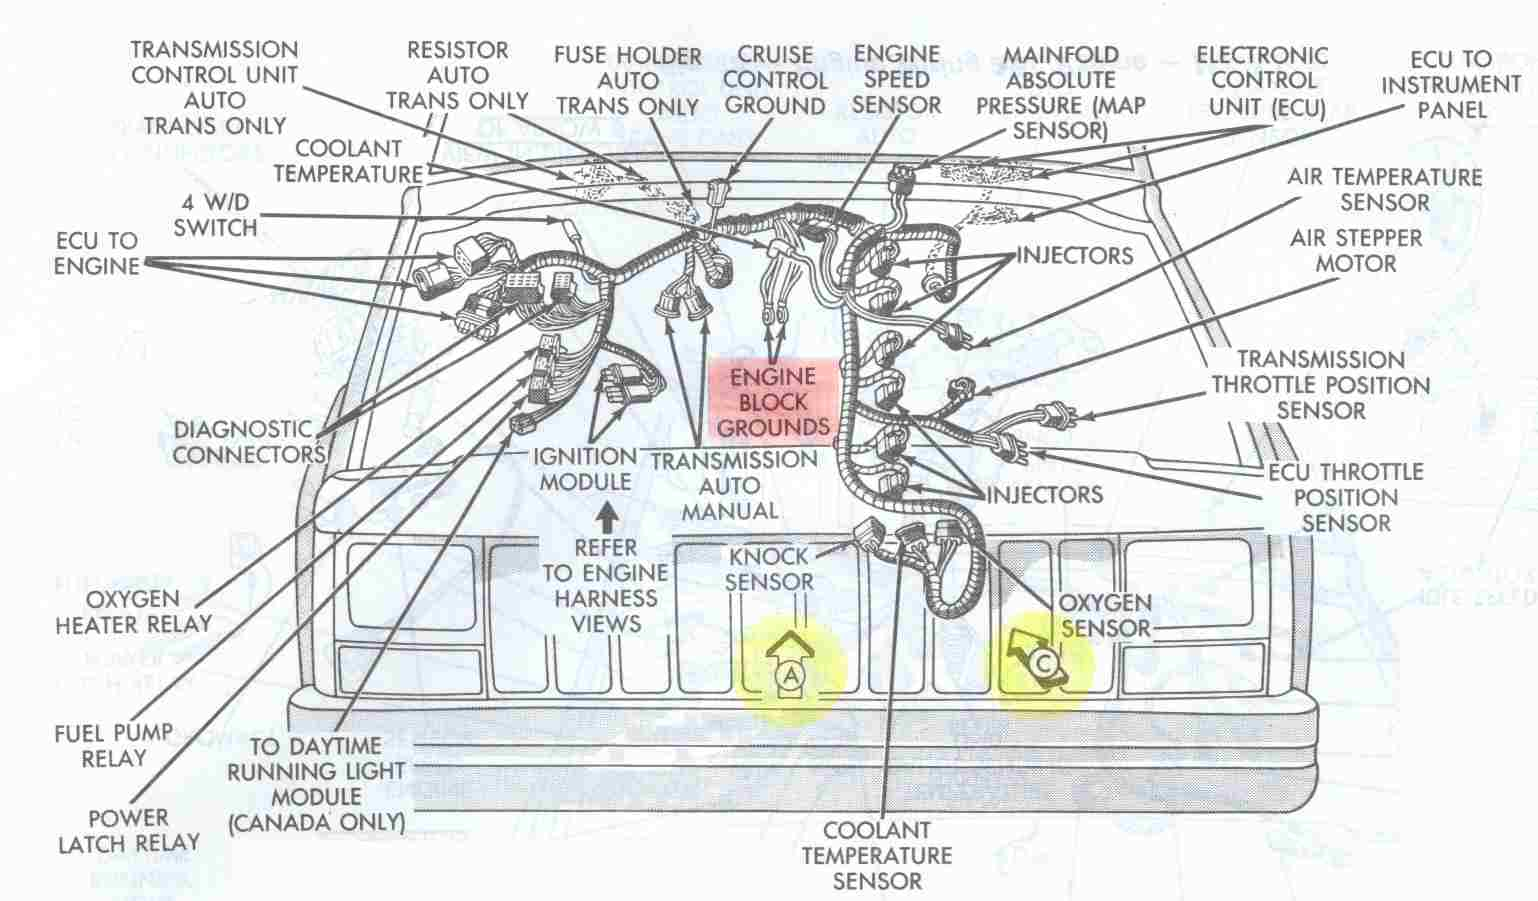 Electrical_Engine_Ground_Points_Overview jeep cherokee electrical diagnosing erratic behavior of engine on 88 cherokee wiring harness